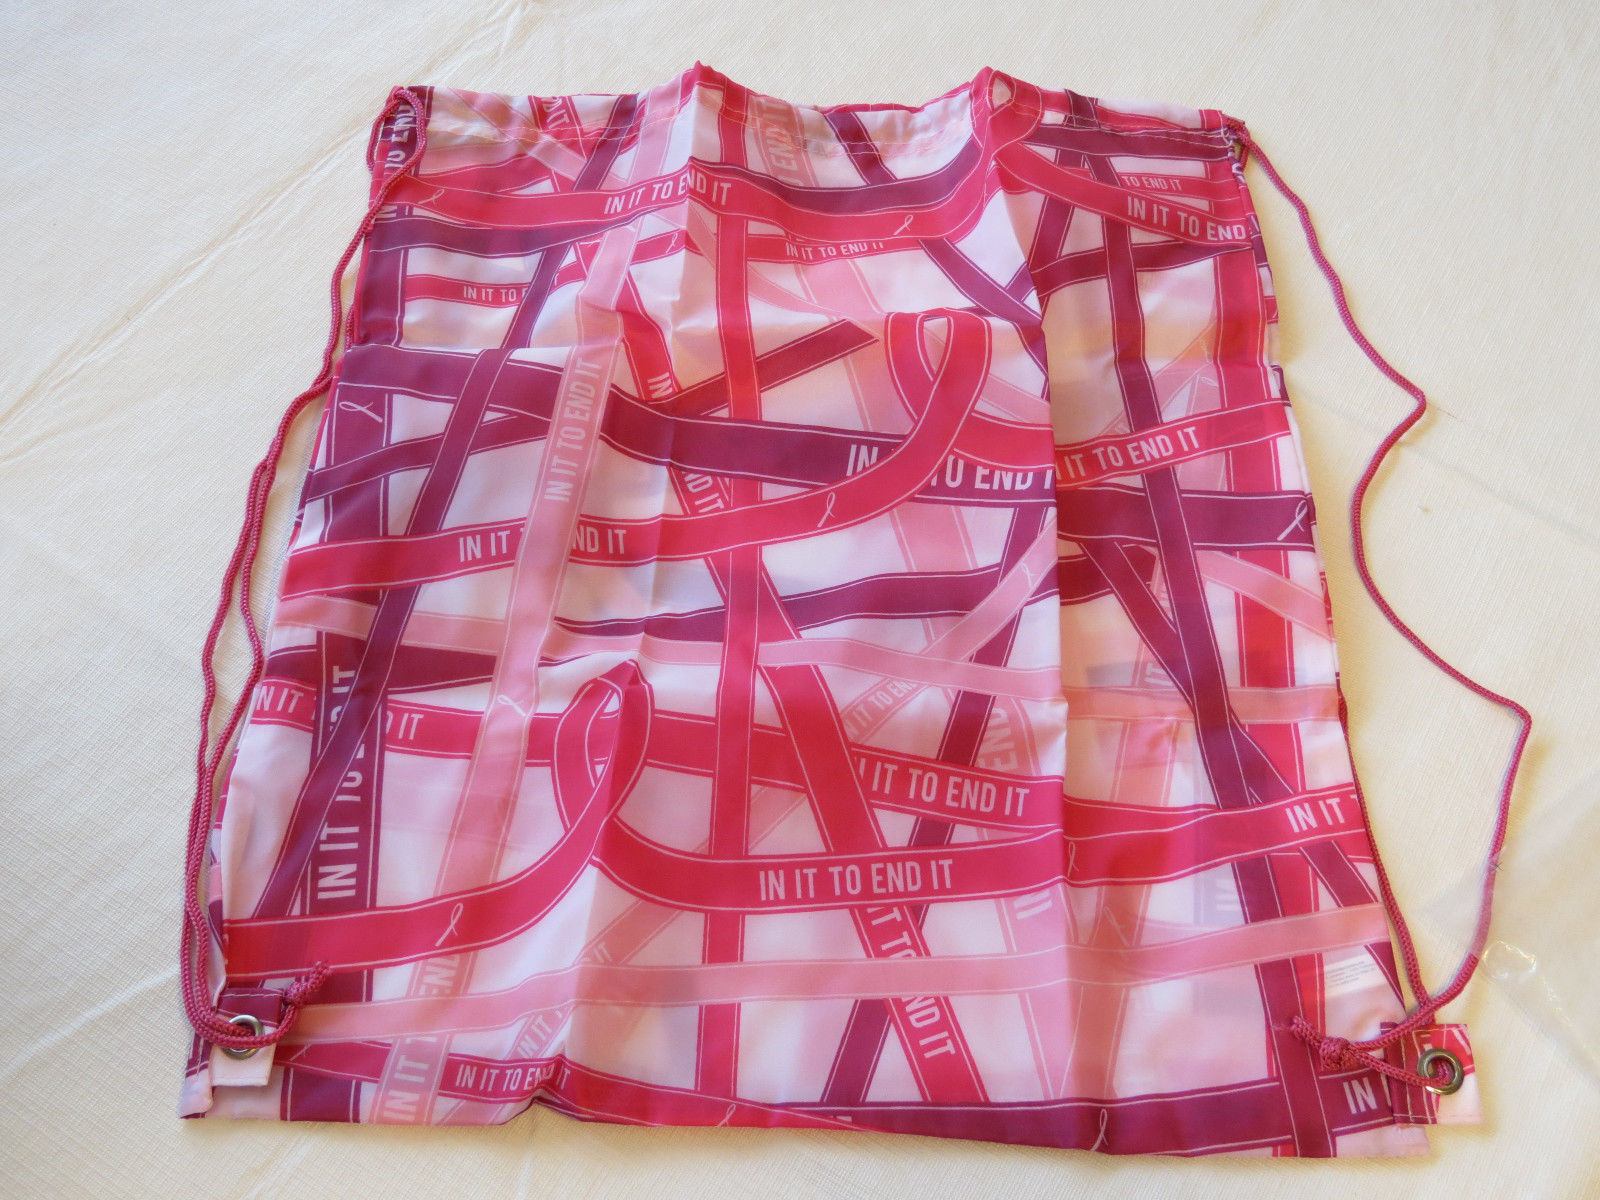 Avon Womens Ladies Breast Cancer Ribbons Backpack pinks light F3619881 NEW;;